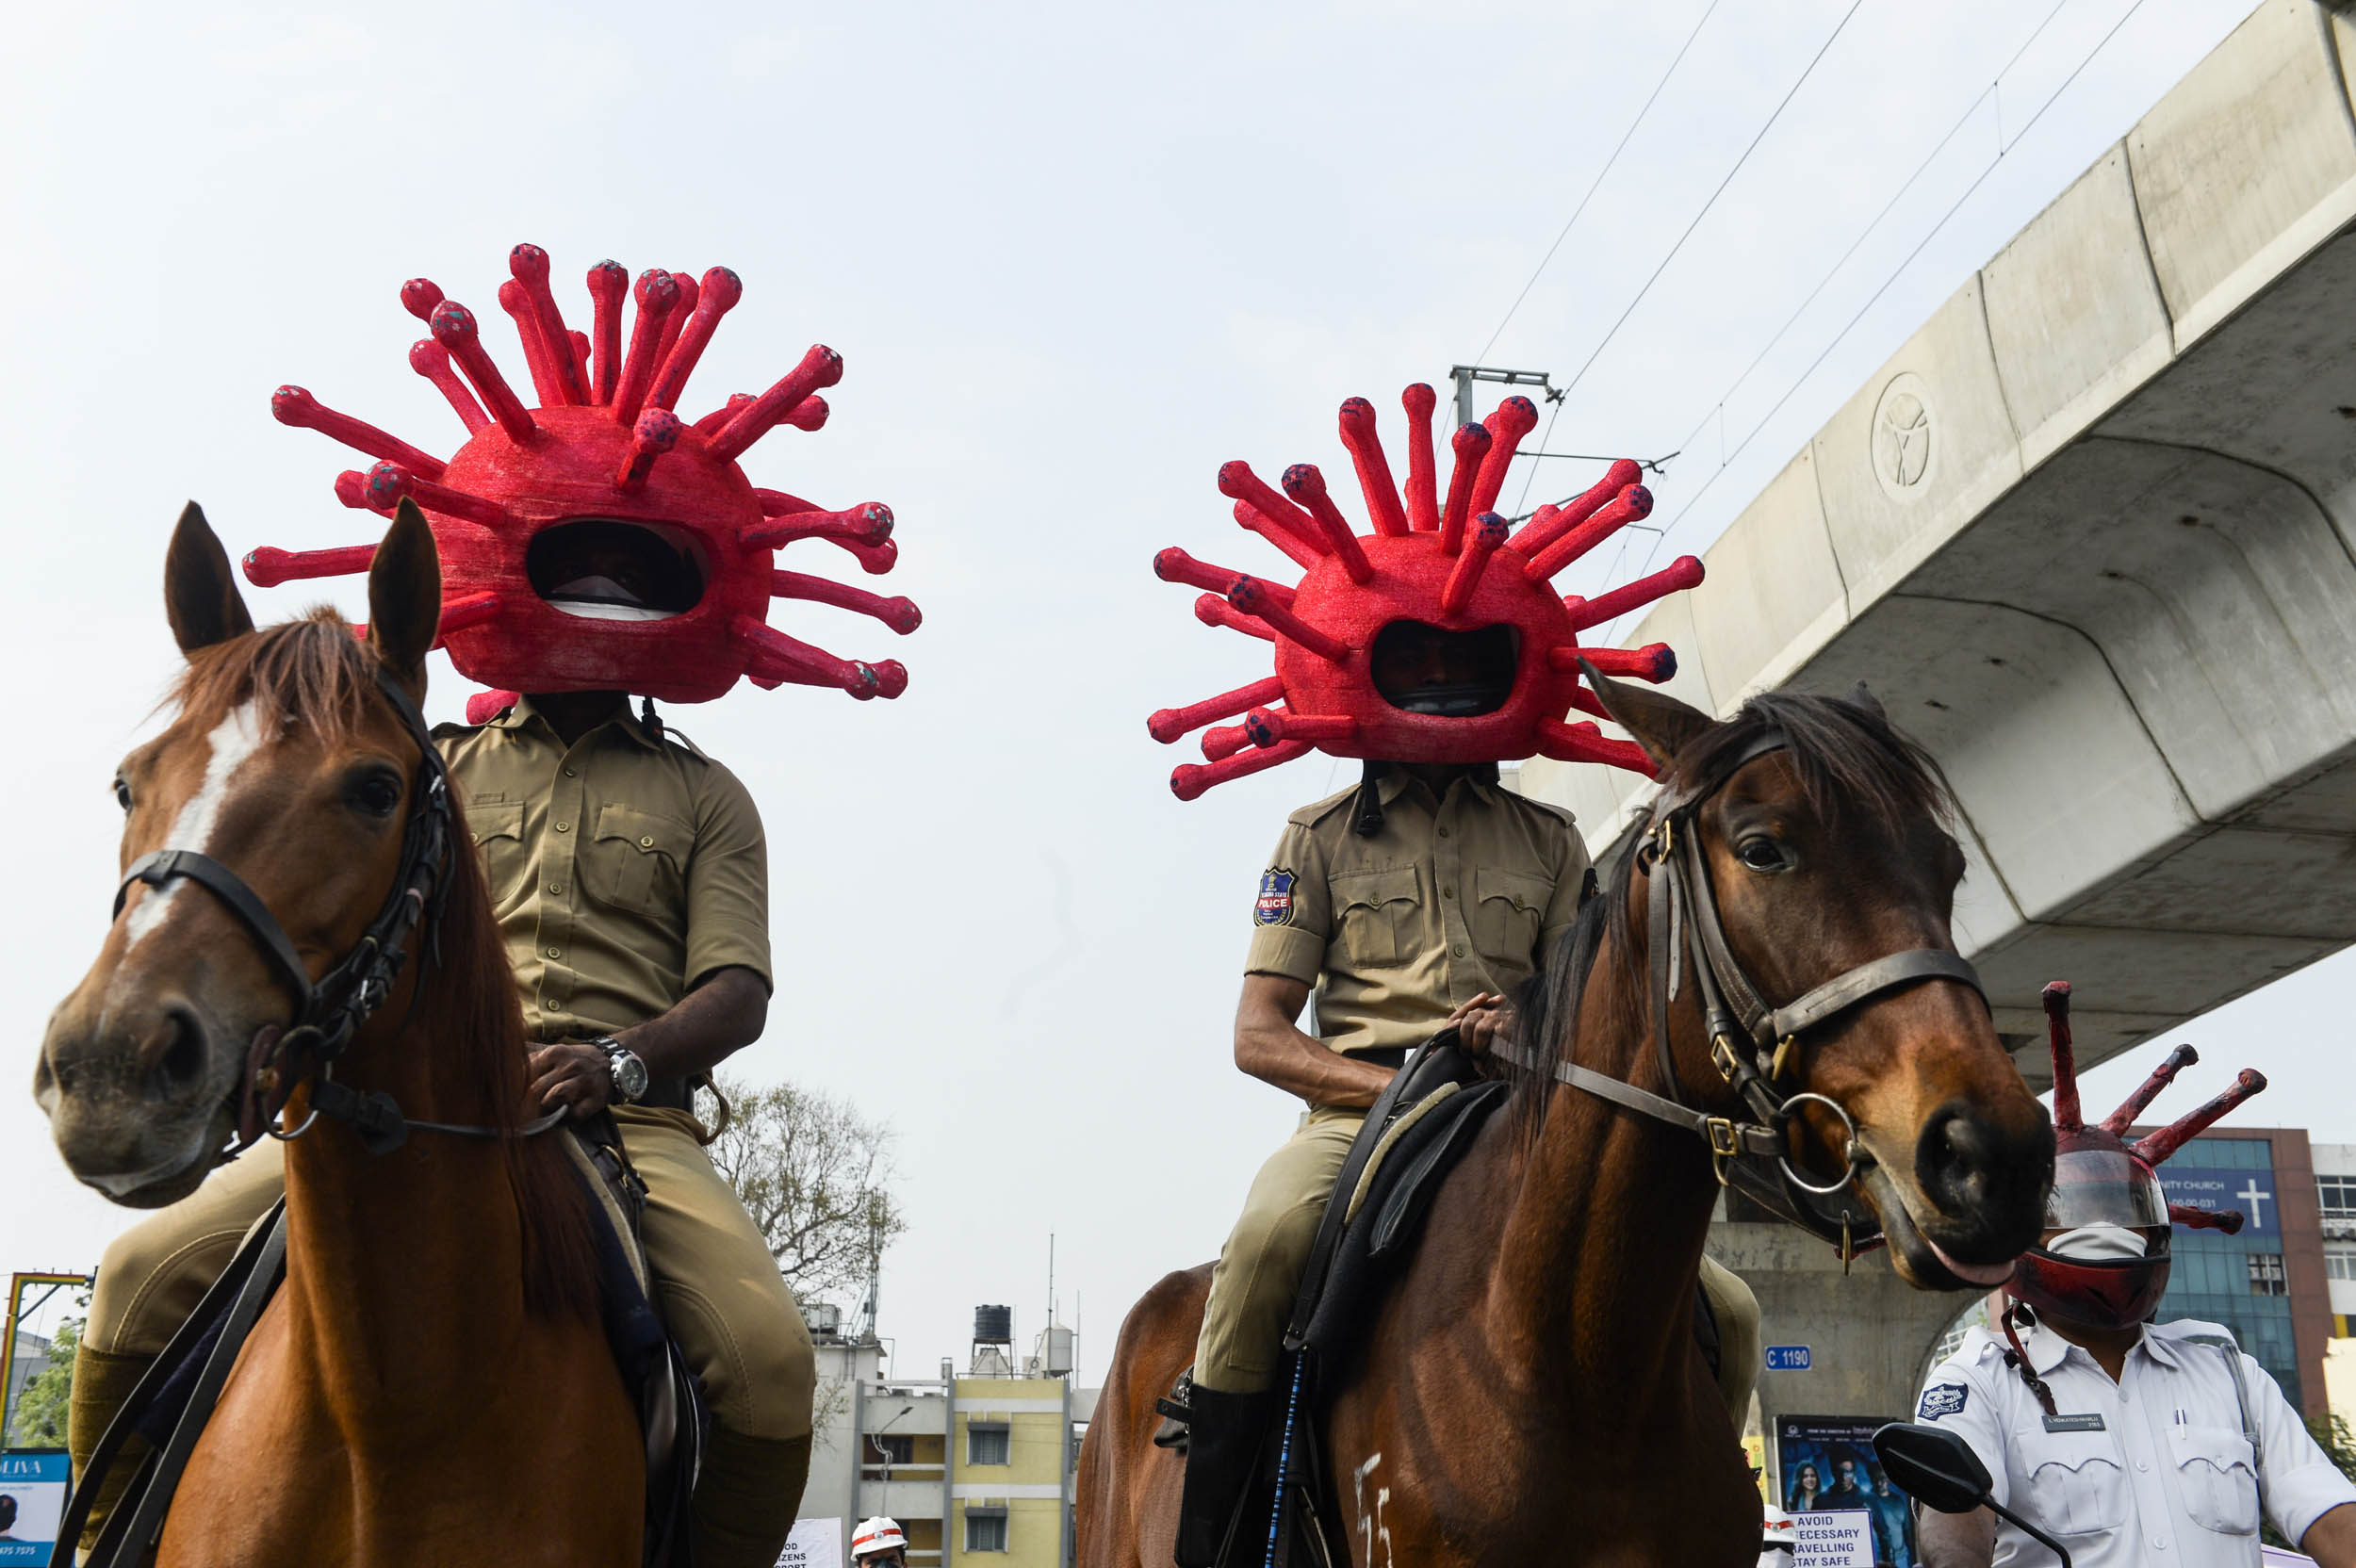 Police personnel wearing coronavirus-themed helmets ride on horses as they participate in a awareness campaign during a 21-day government-imposed nationwide lockdown as a preventive measure against the COVID-19 coronavirus in Secunderabad, the twin city of Hyderabad, on April 2, 2020. Photo: Noah Seelam / AFP